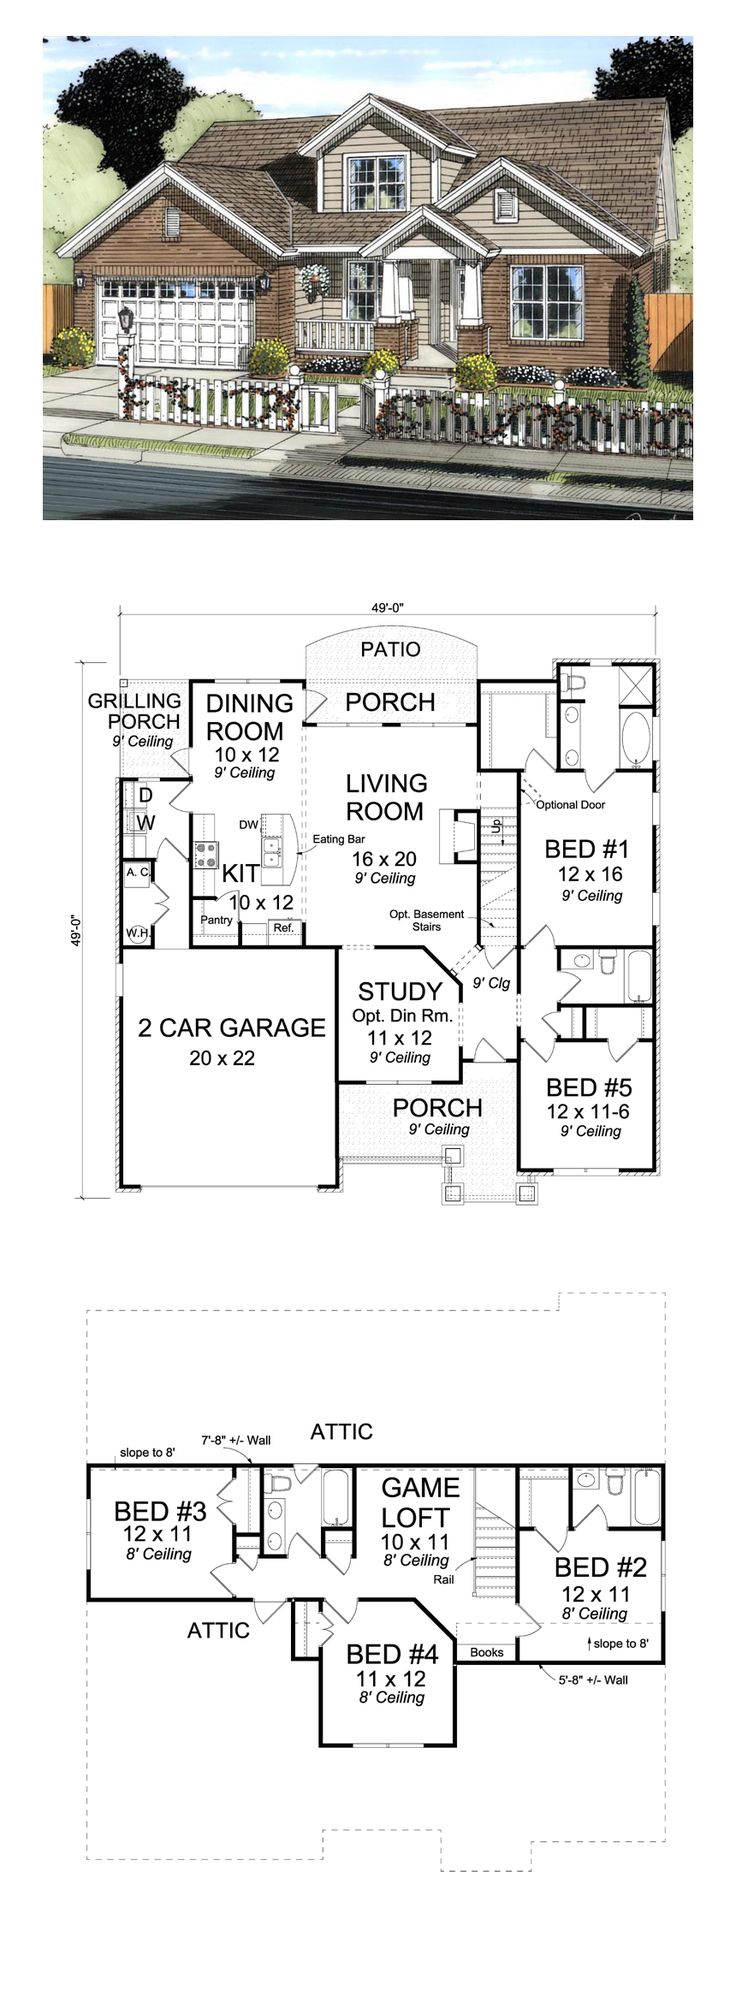 Small House Plans With Loft Bedroom 17 Best Ideas About Architectural House Plans On Pinterest House